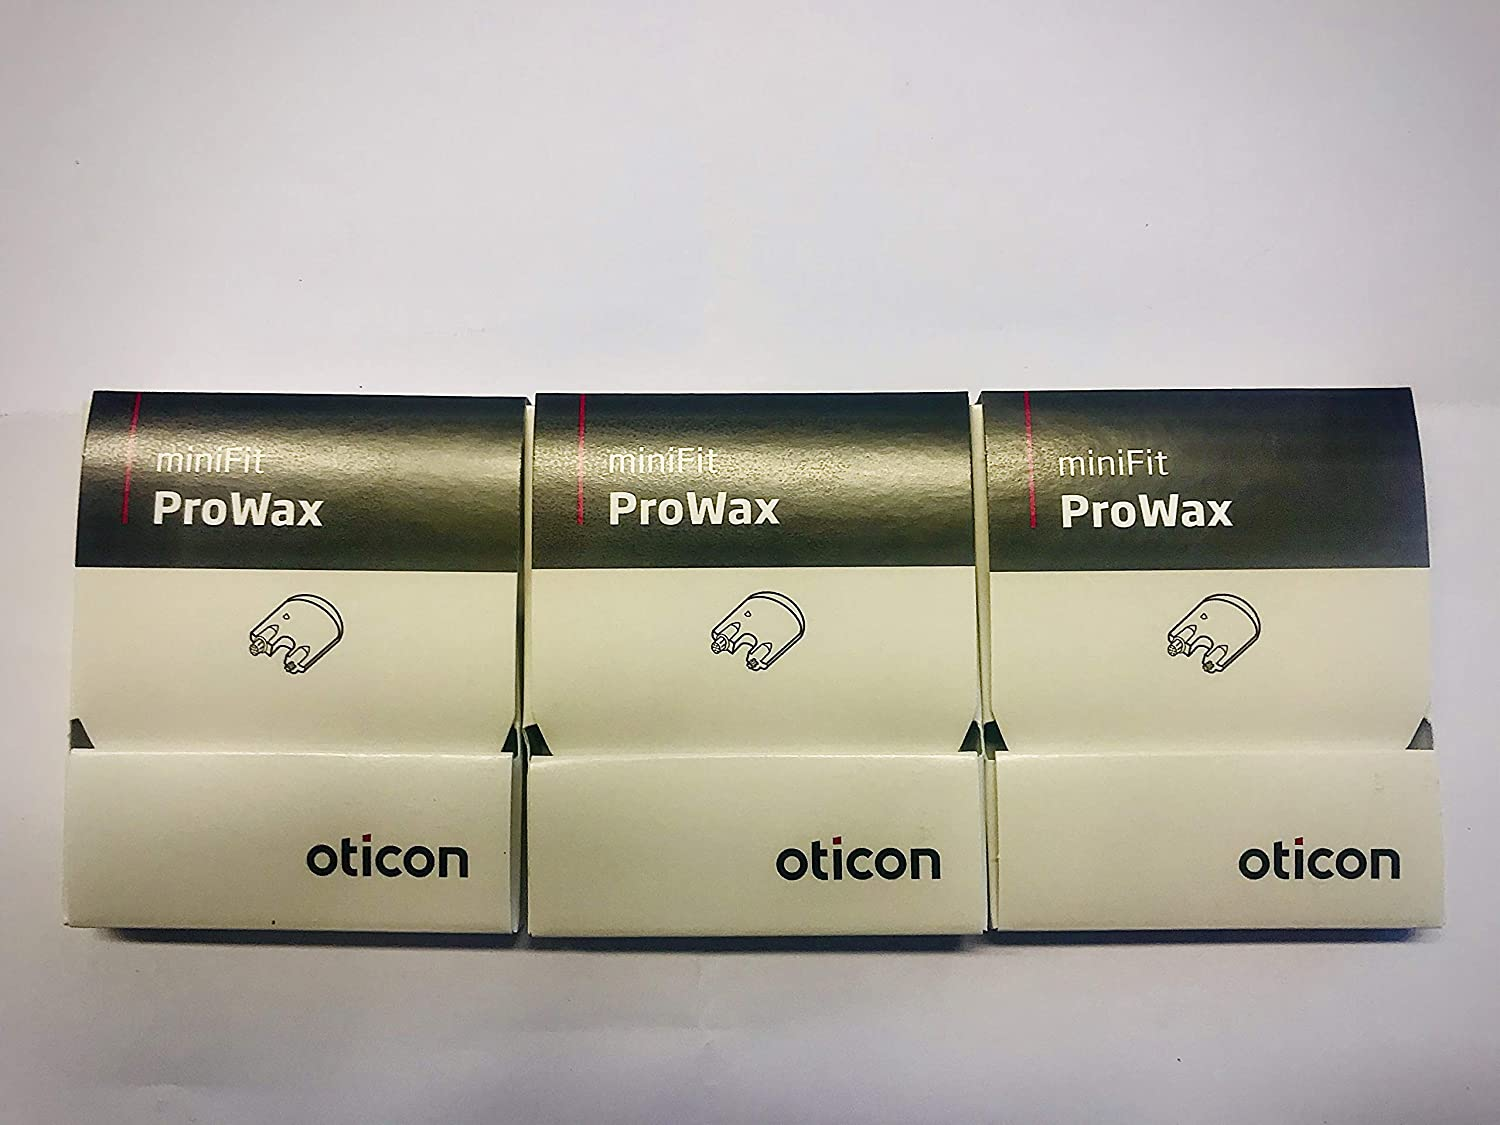 3 Packs MiniFit online shopping ProWax Filters Max 81% OFF for Pro 2 Alta Oticon and